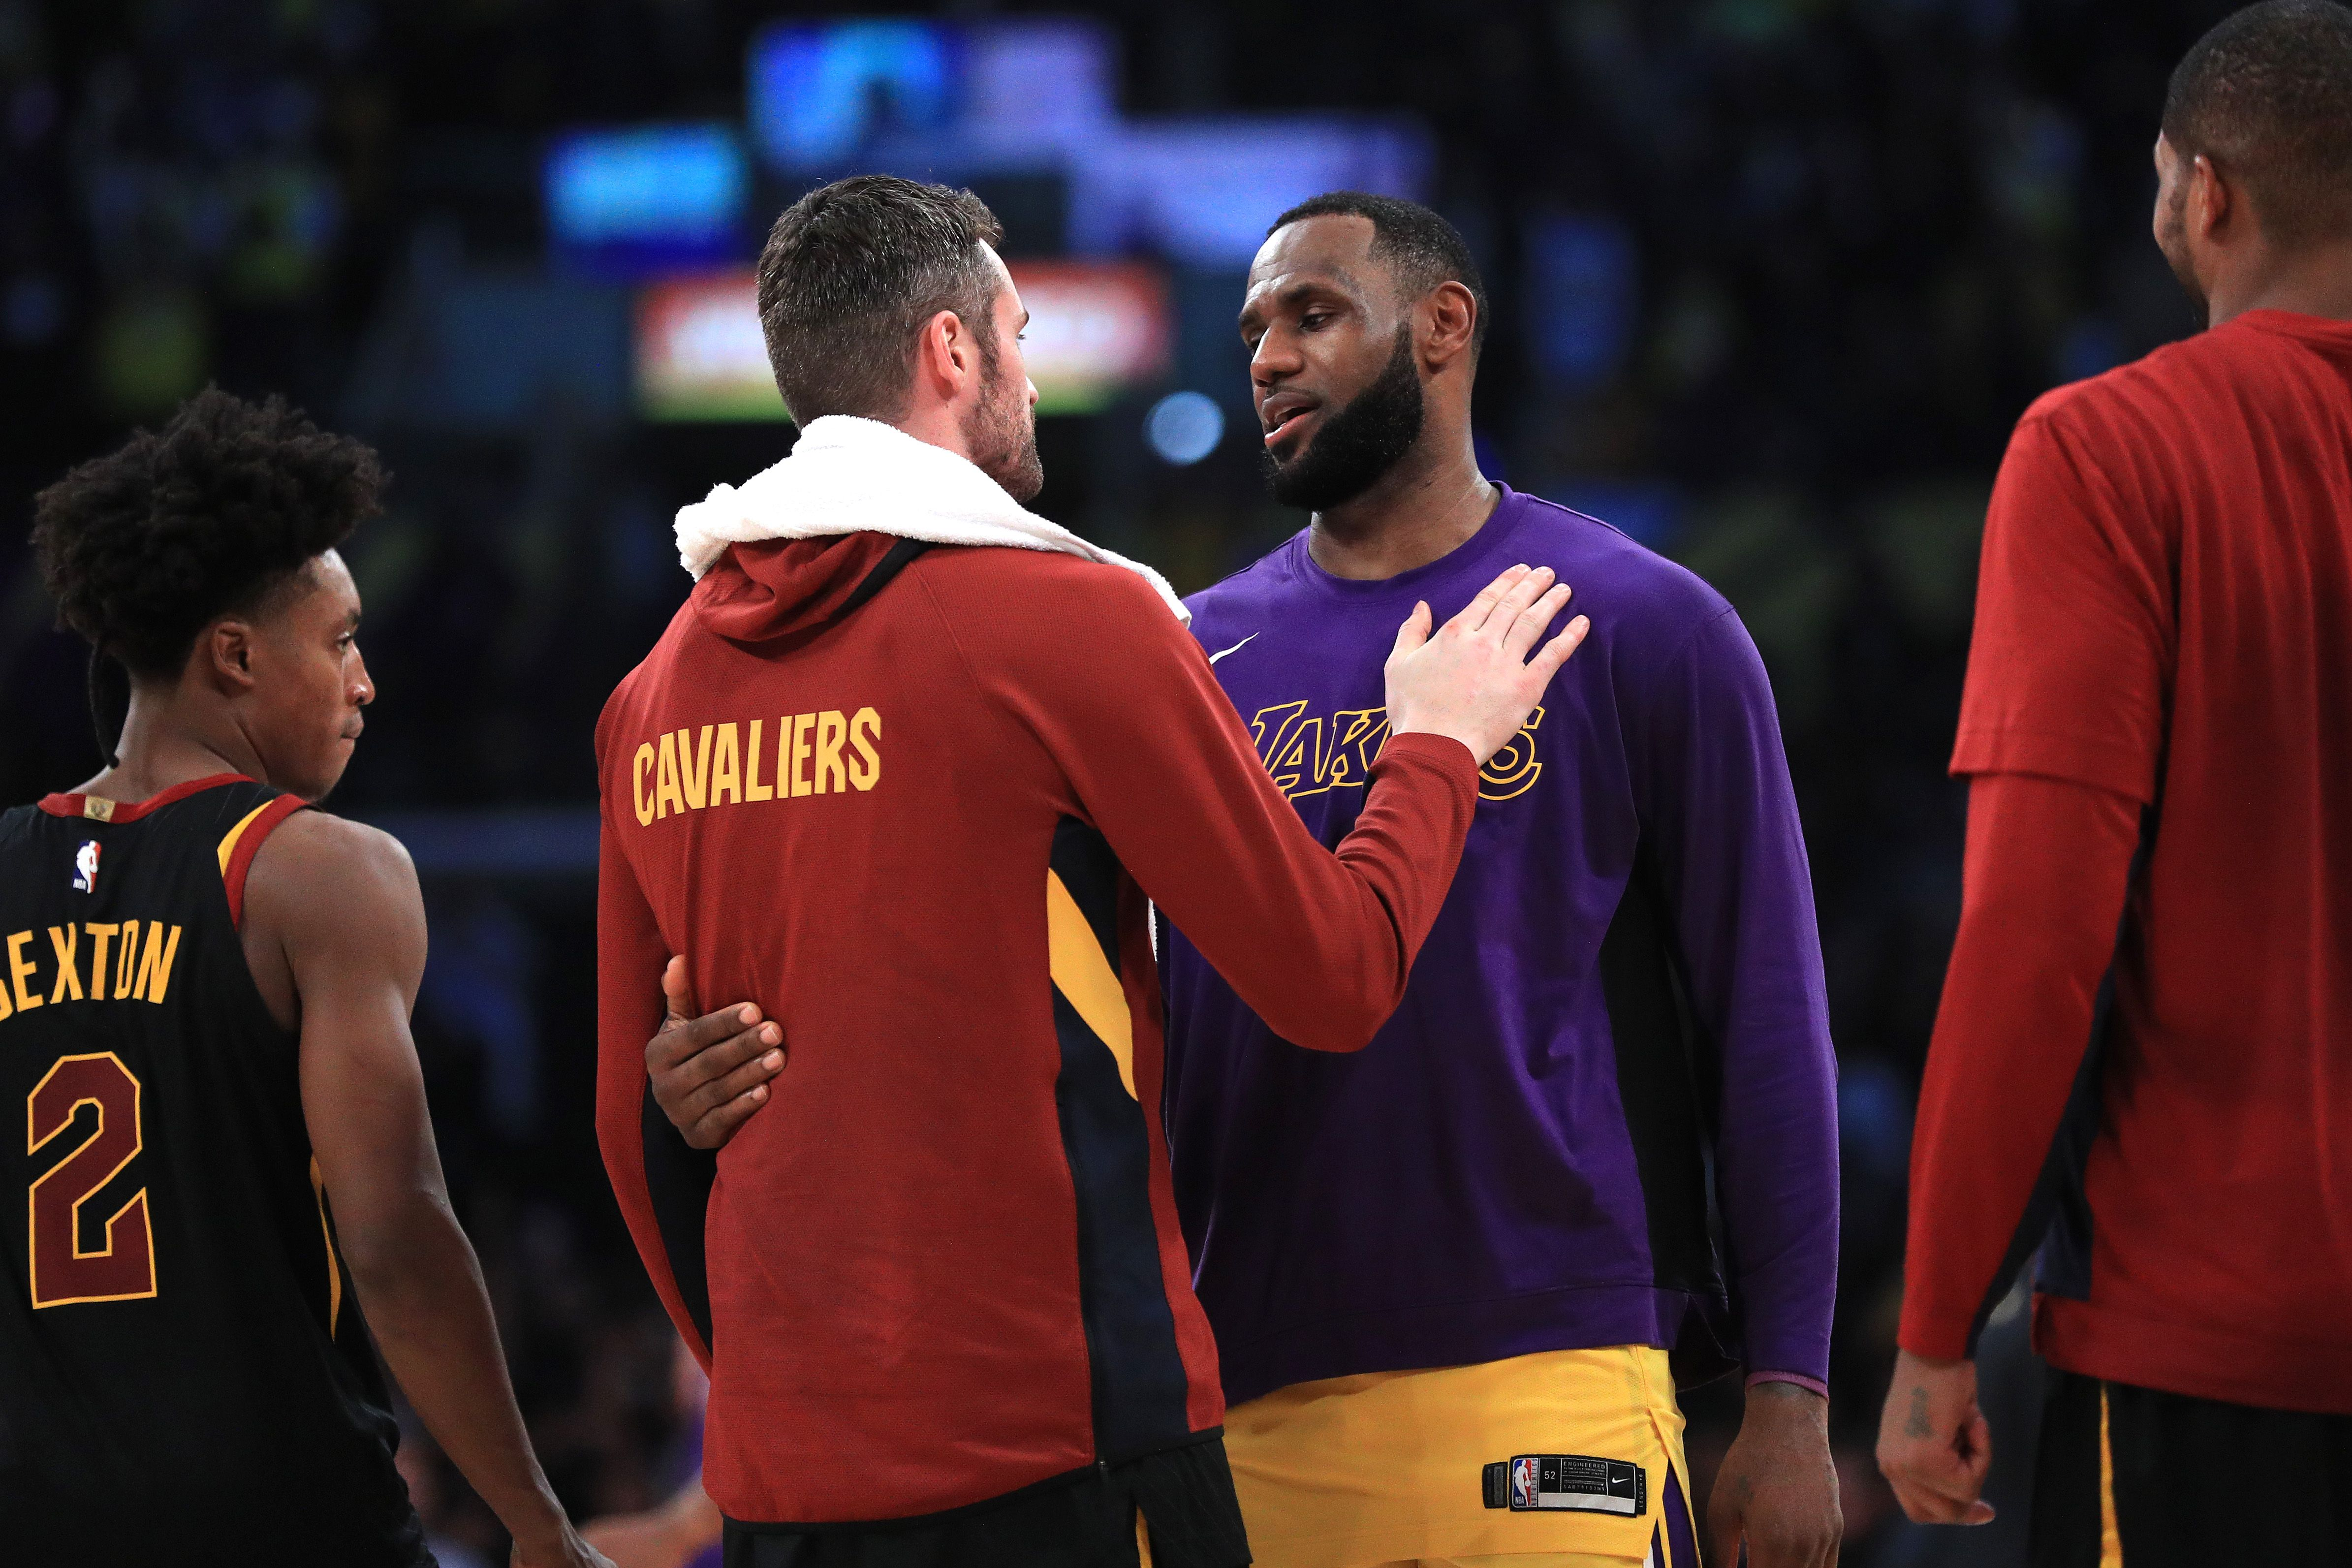 Kevin Love talks with former teammate LeBron James after the game